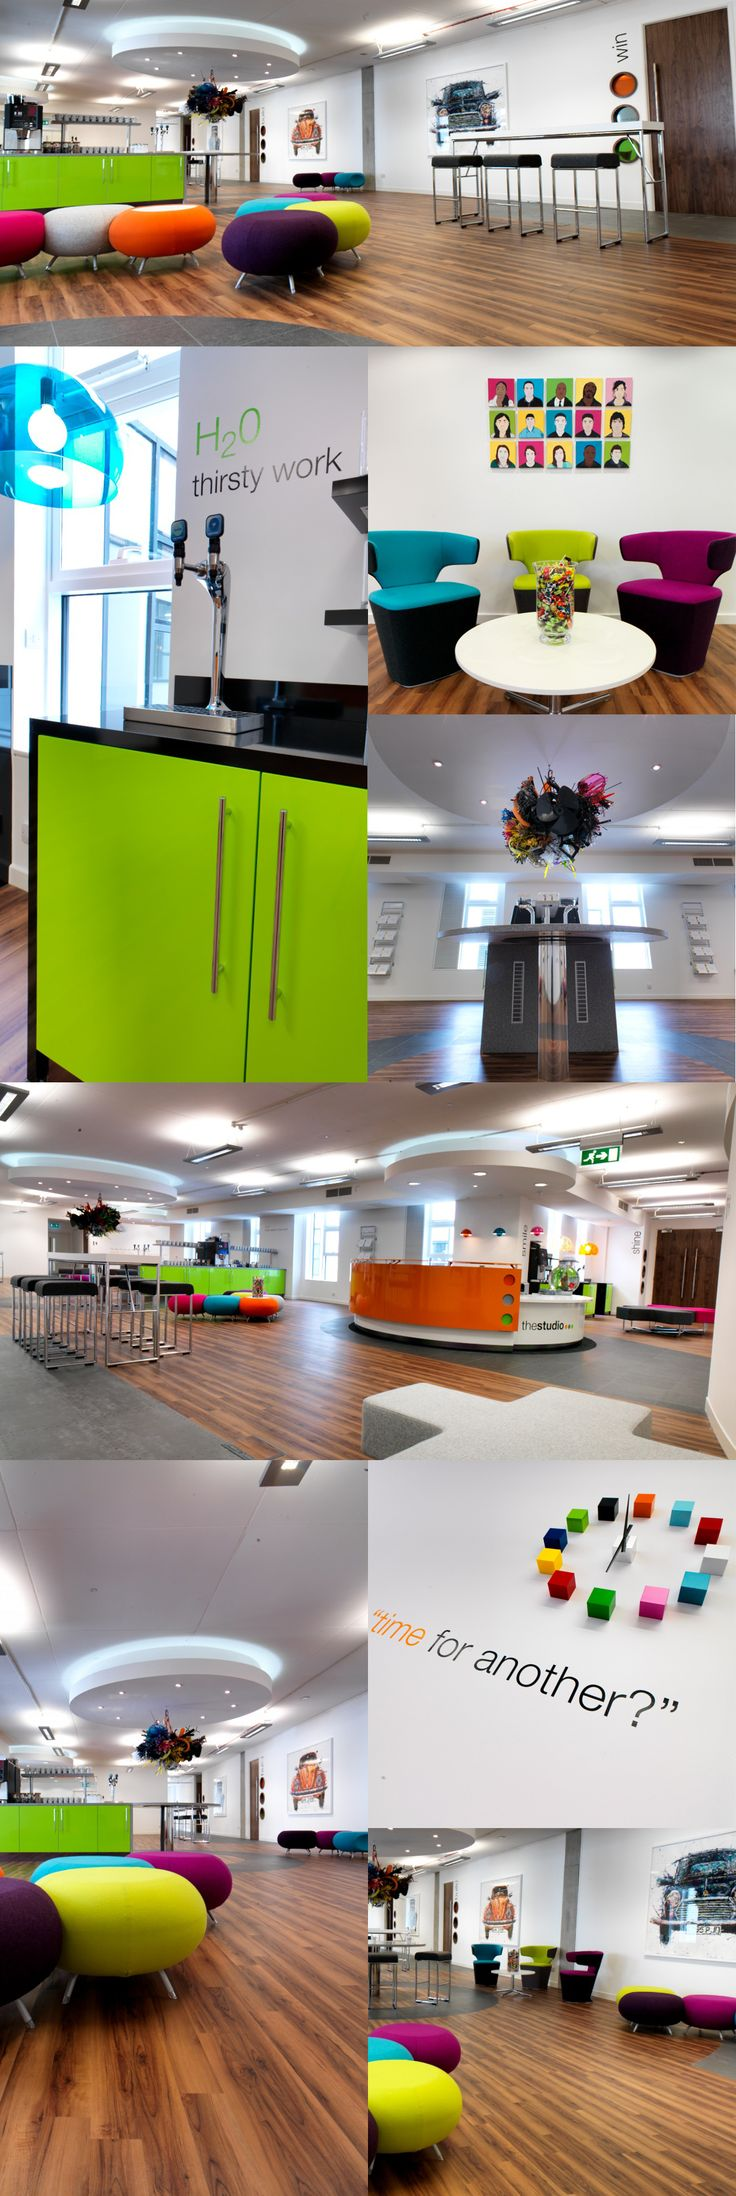 The Studio Manchester #conferencecentre #interiordesign #eventspace #workplace #officedesign